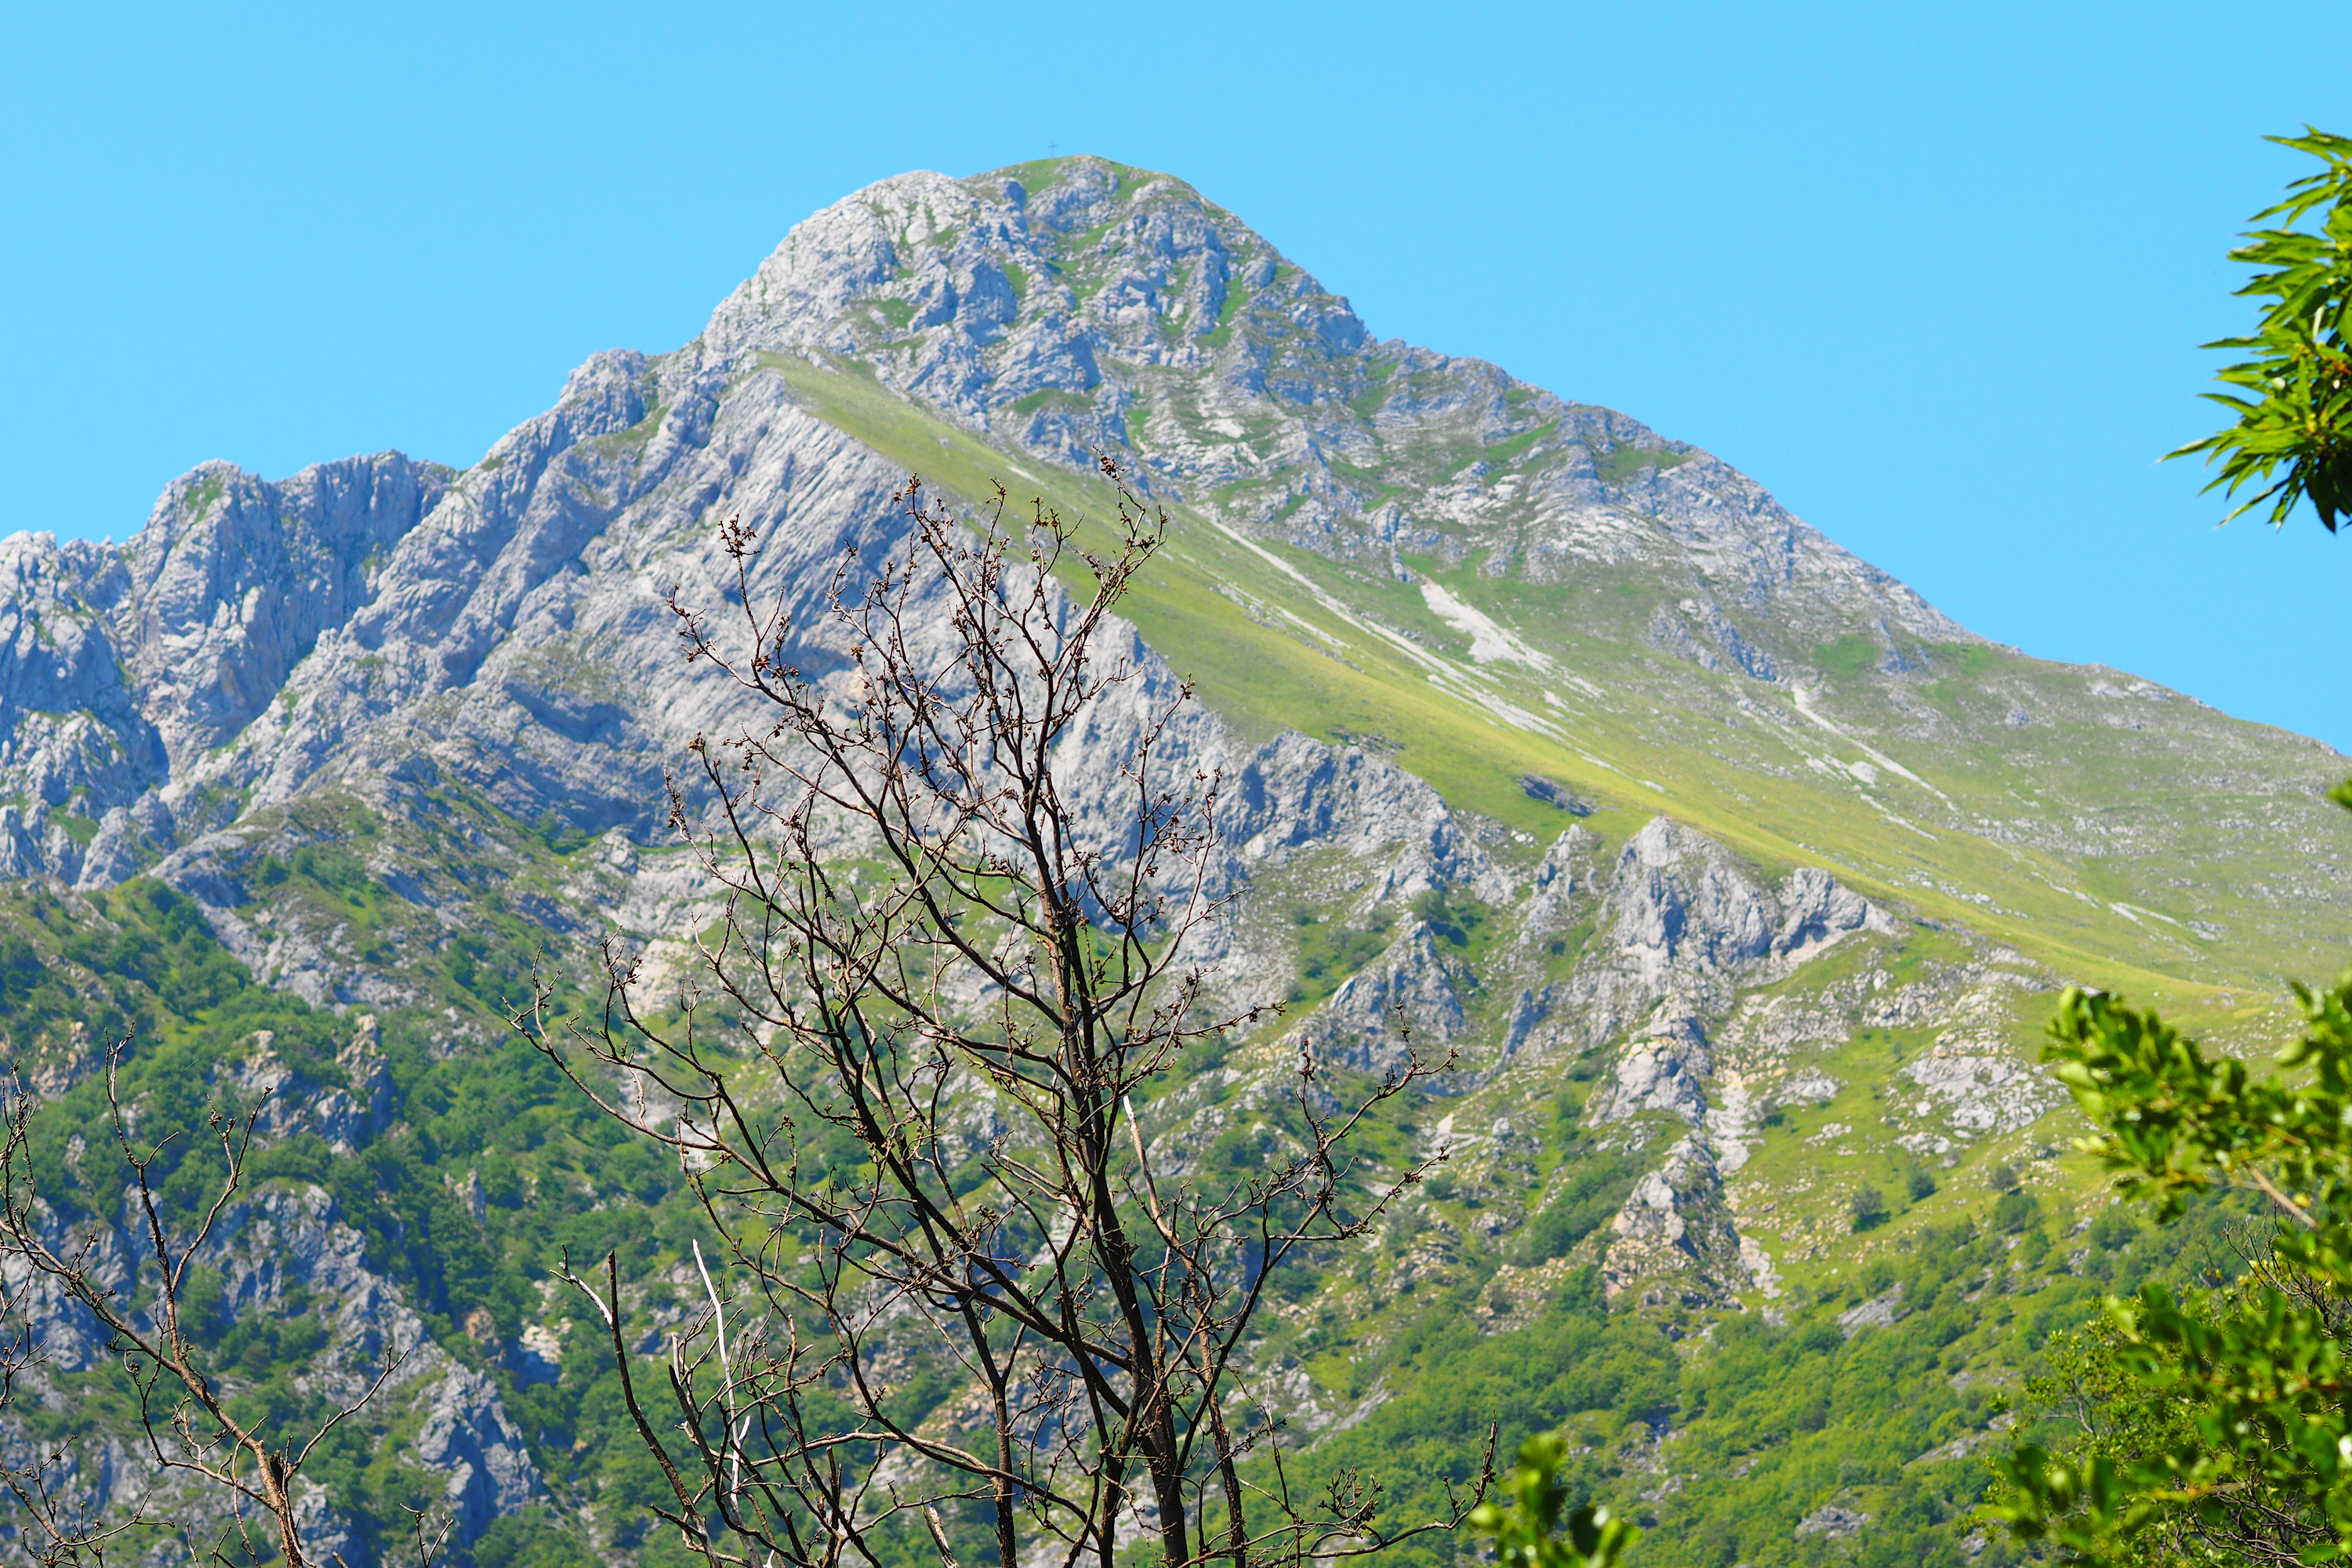 Apuan Alps - Pania of the Cross